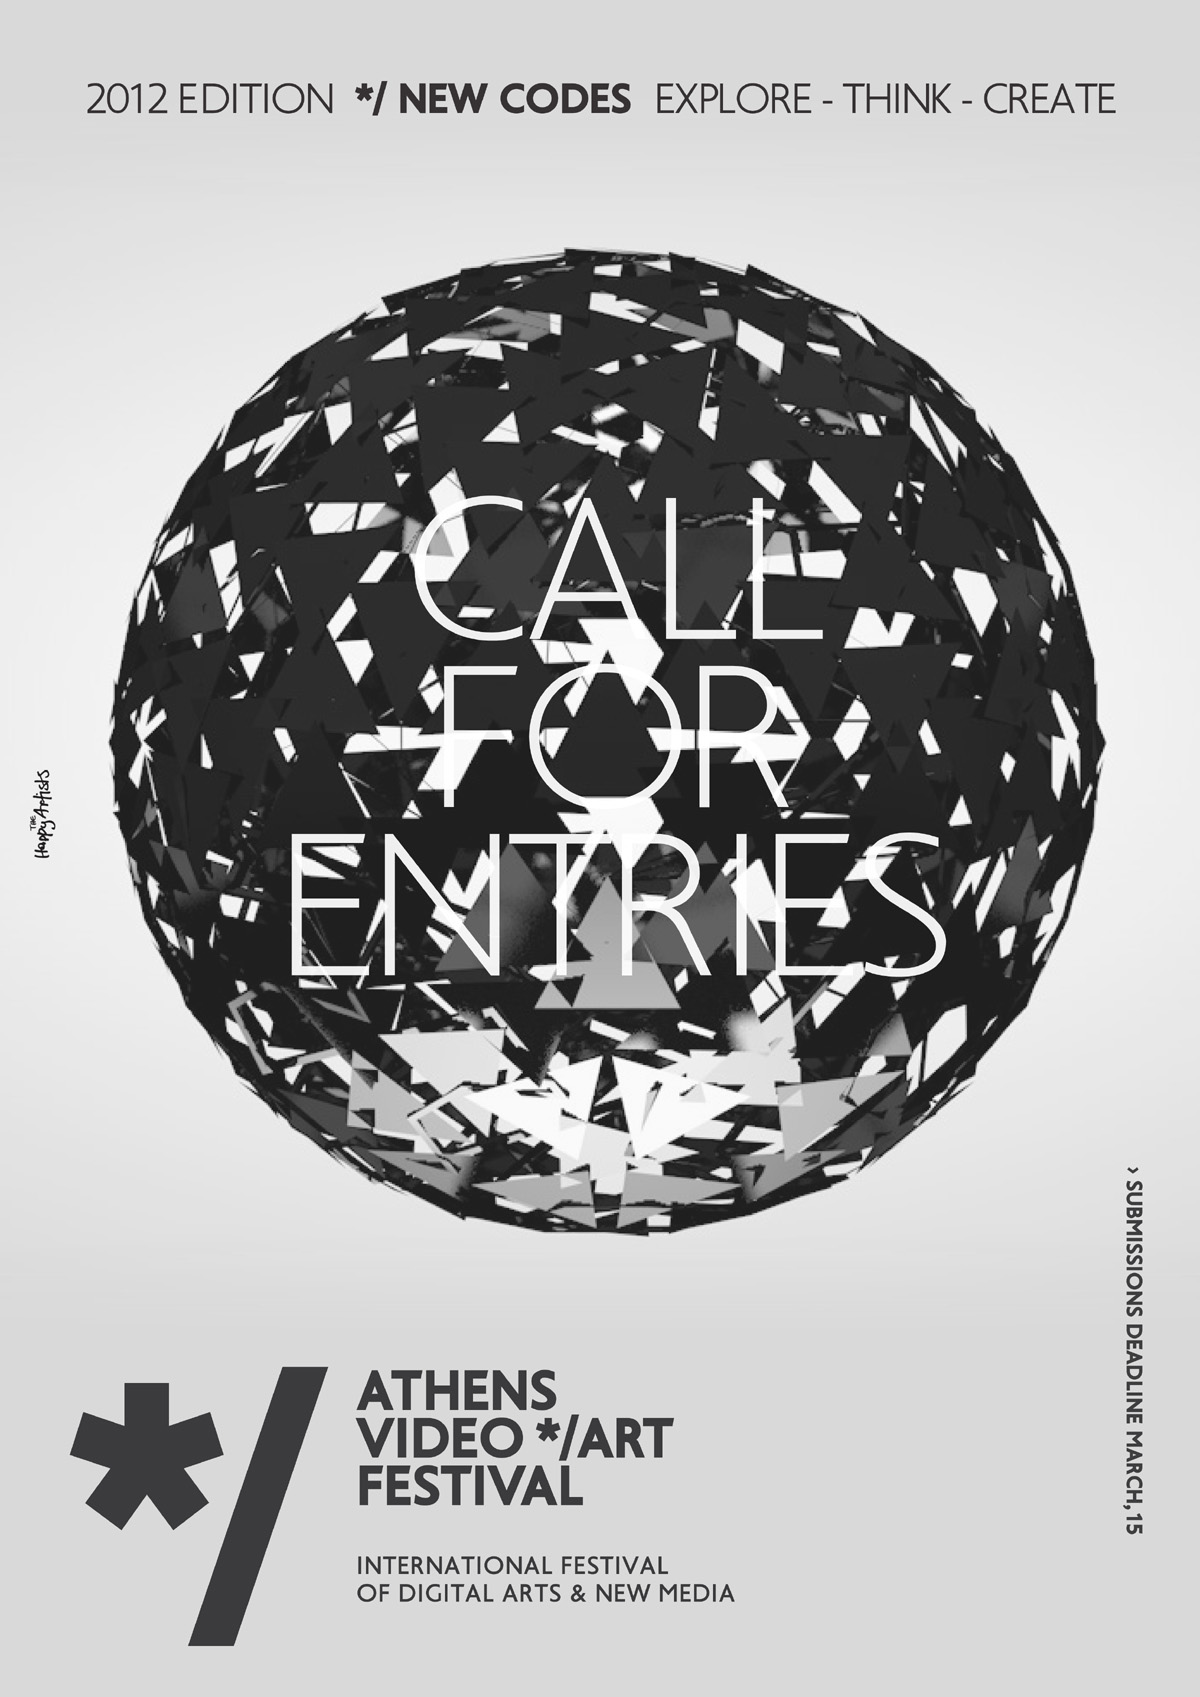 Art Call For Entries